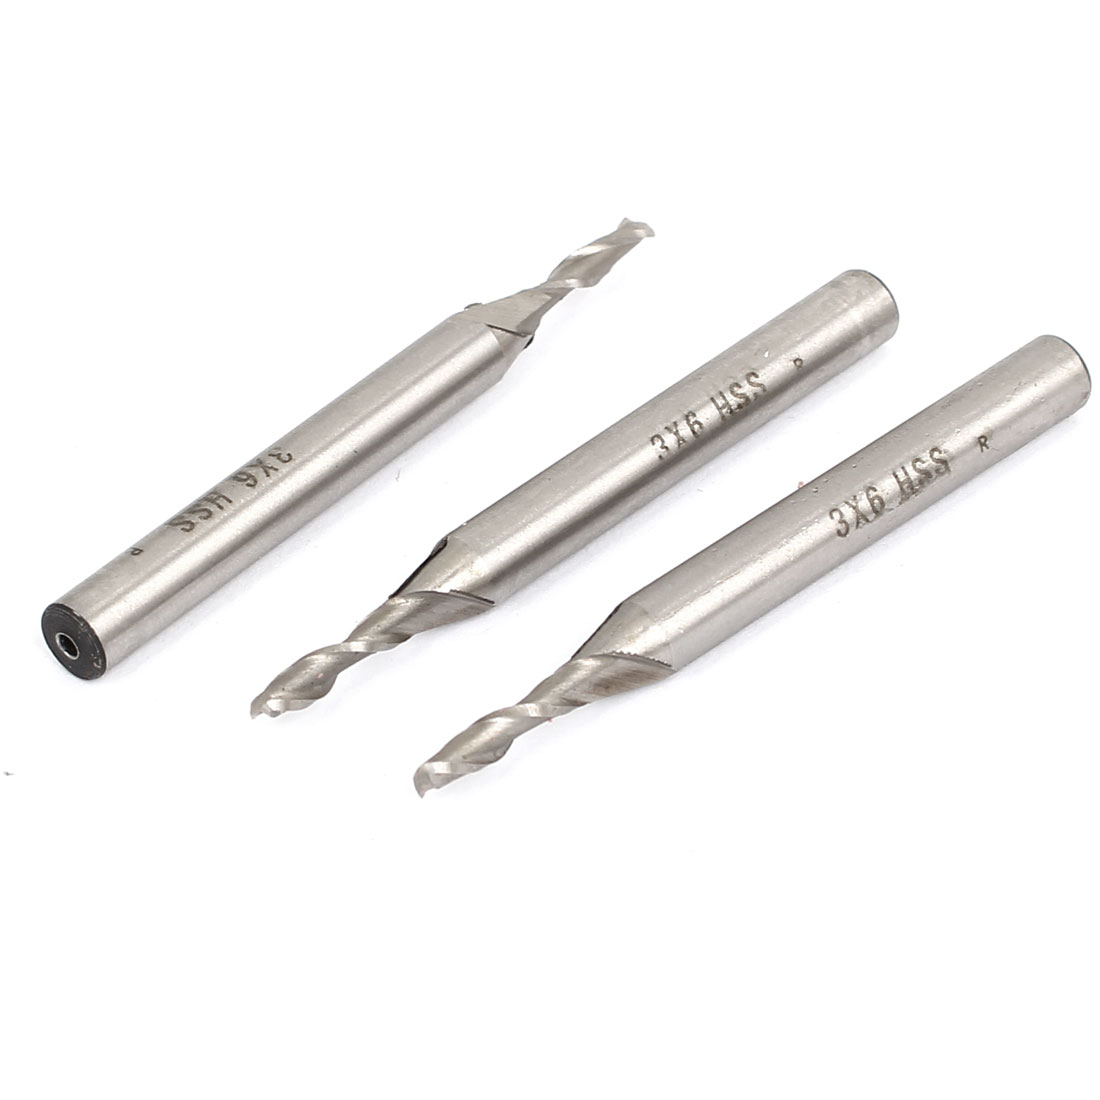 3mm Cutting Dia 6mm Straight Shank 2 Flute HSS End Mill Cutter CNC Bit 3Pcs